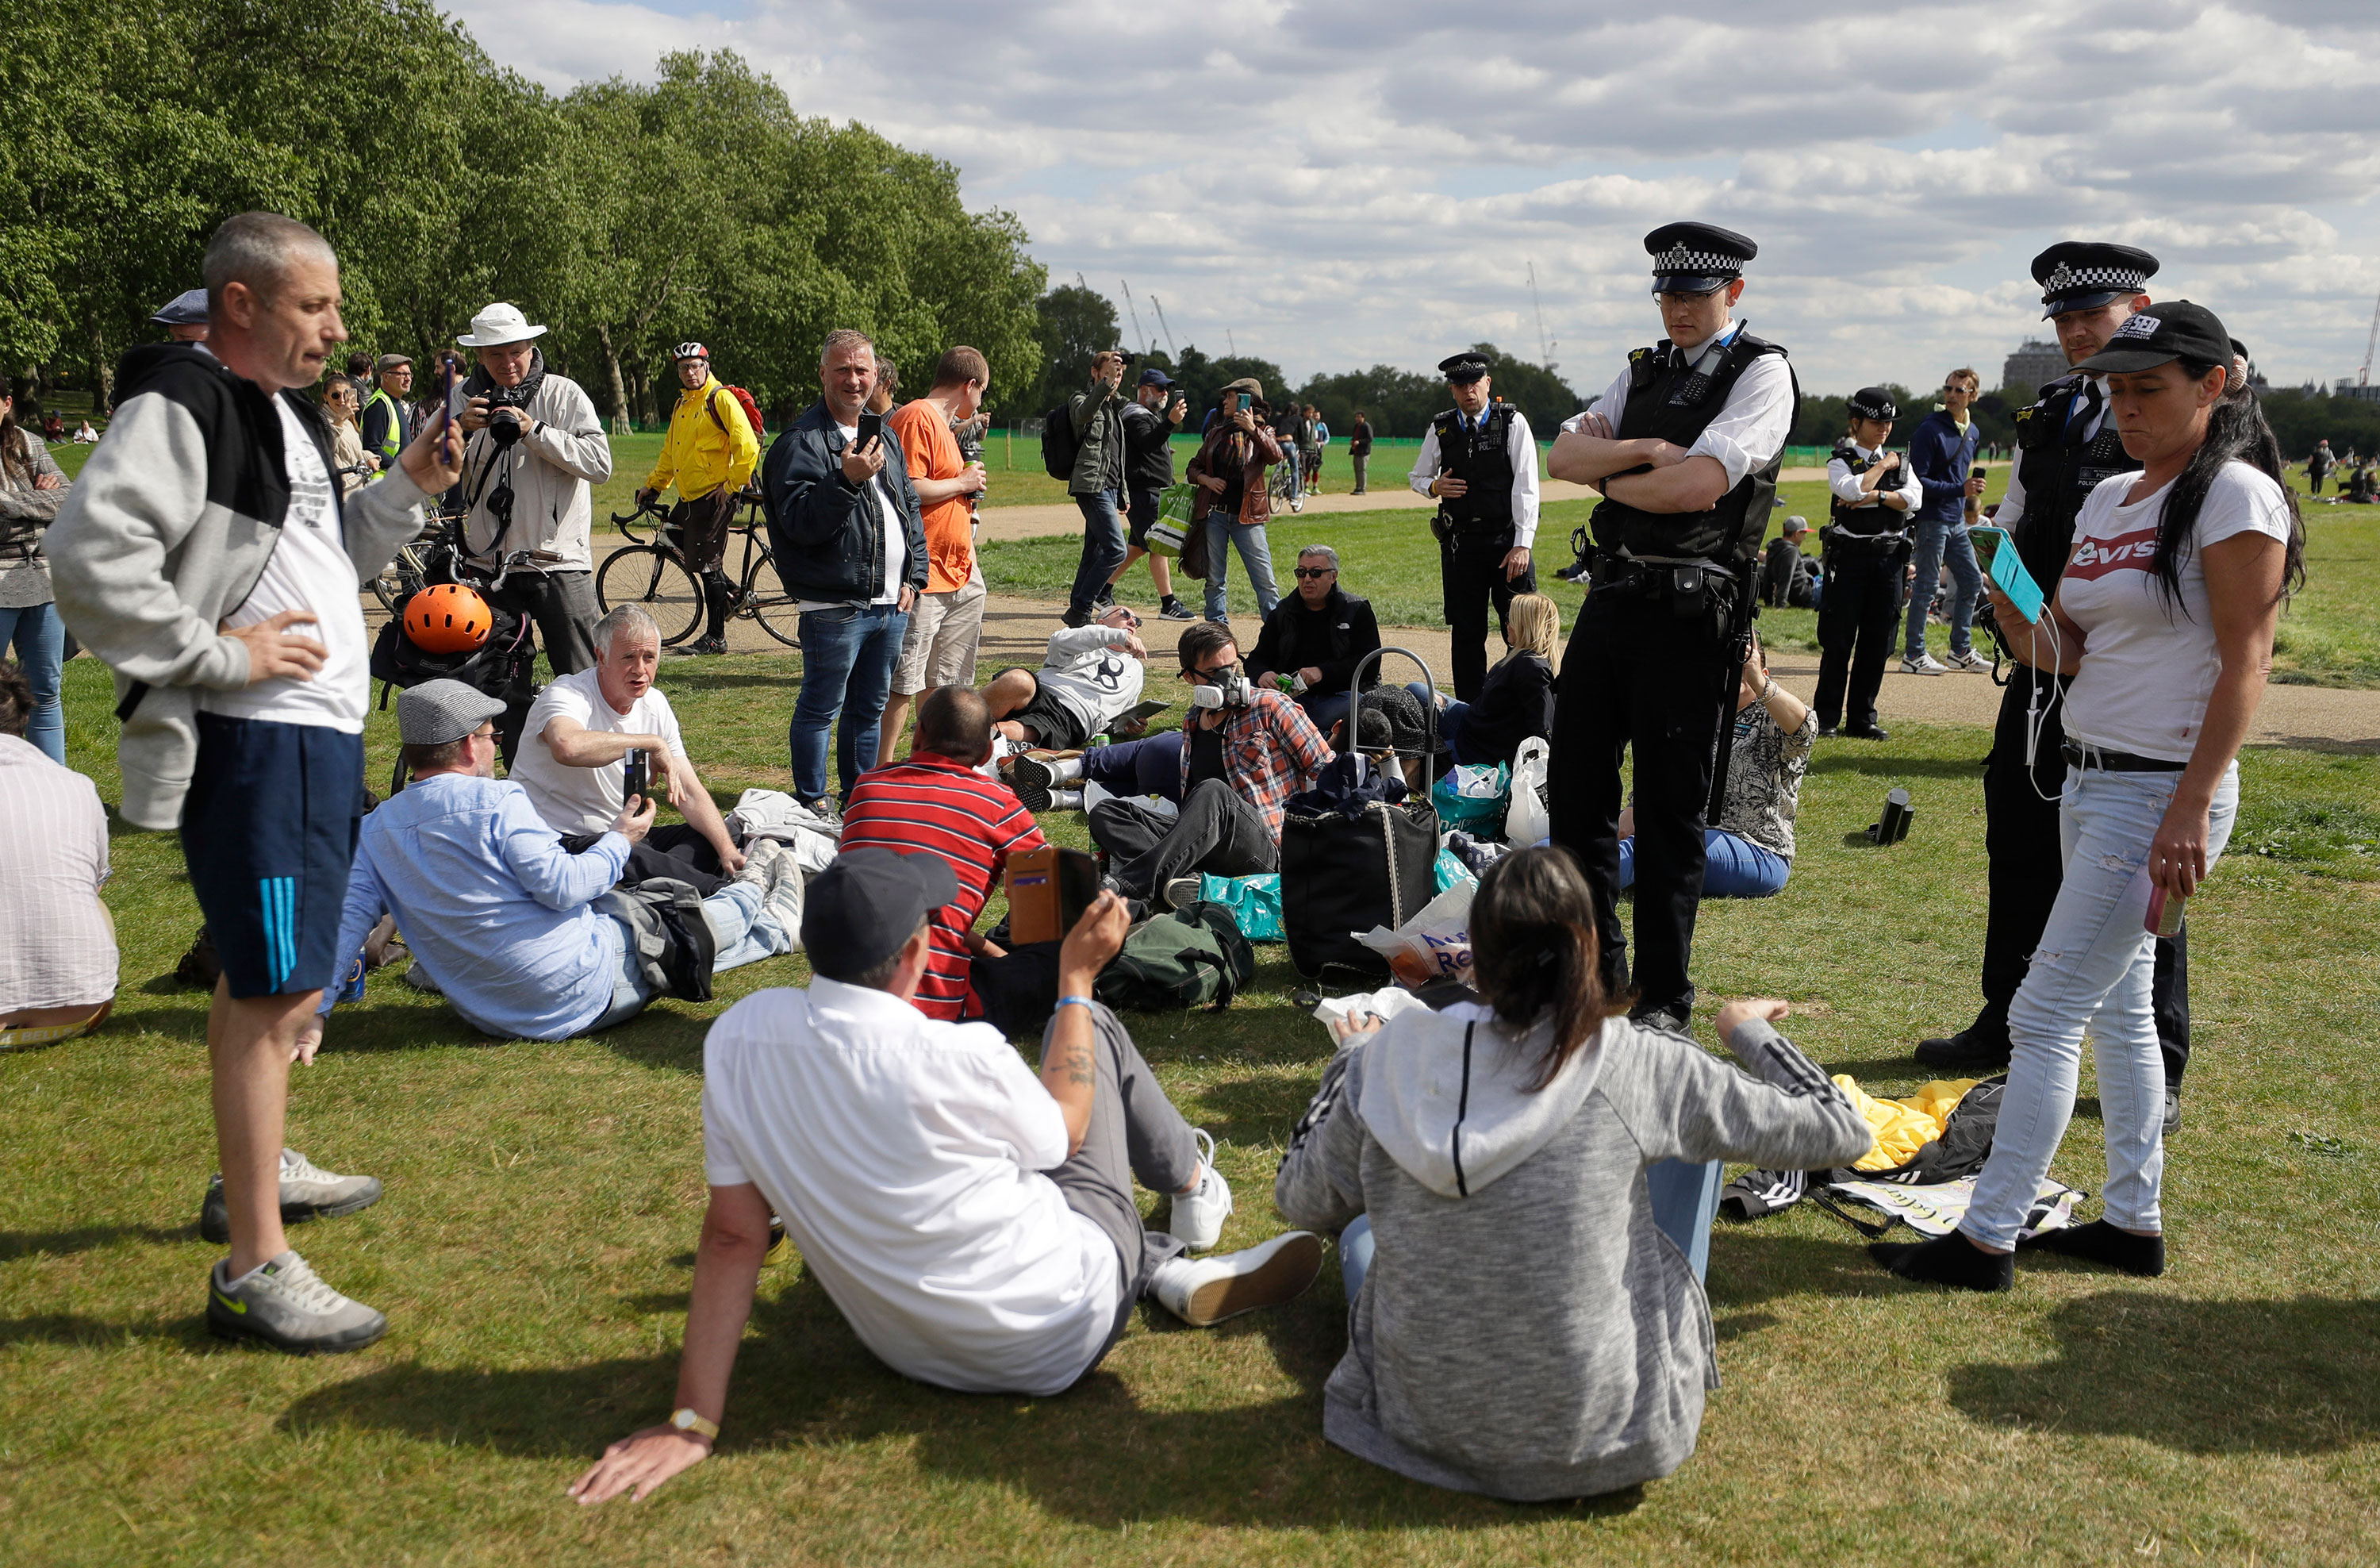 Police speak to people during a mass gathering protest in Hyde Park in London on May 16.